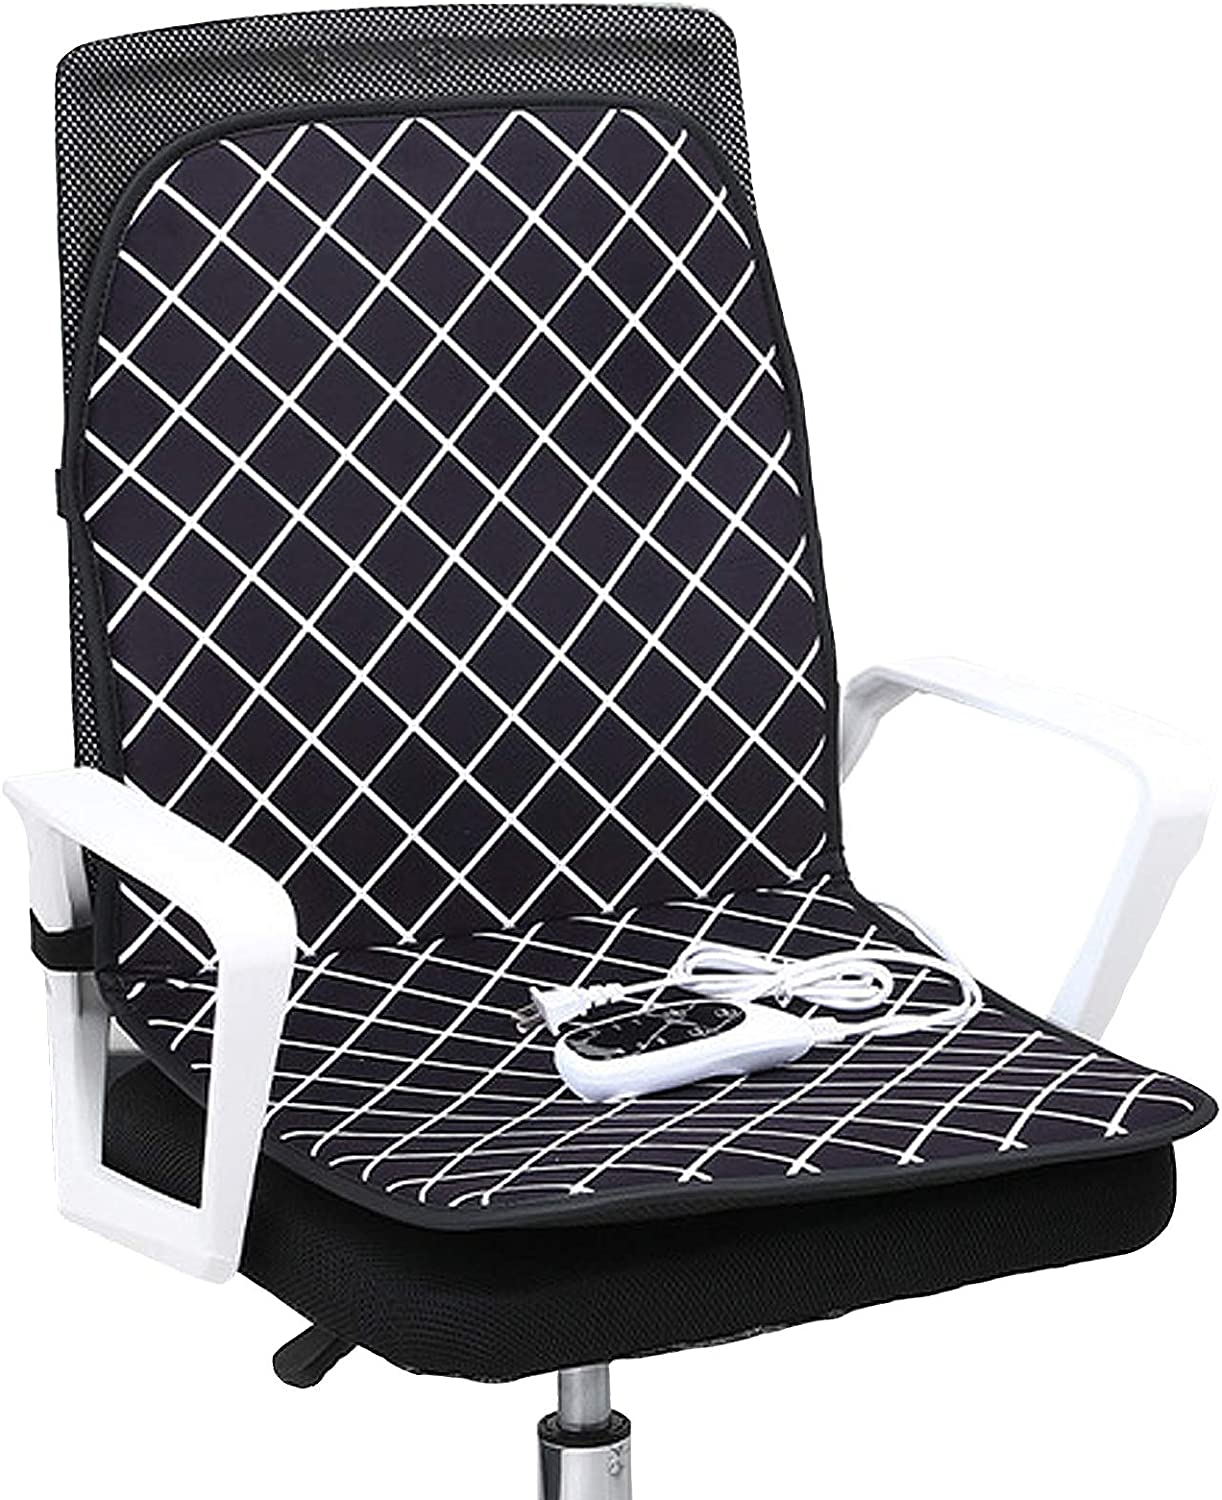 sold out Purchase Heated Seat Cushion with Temperature Controller Chair Heater Ch